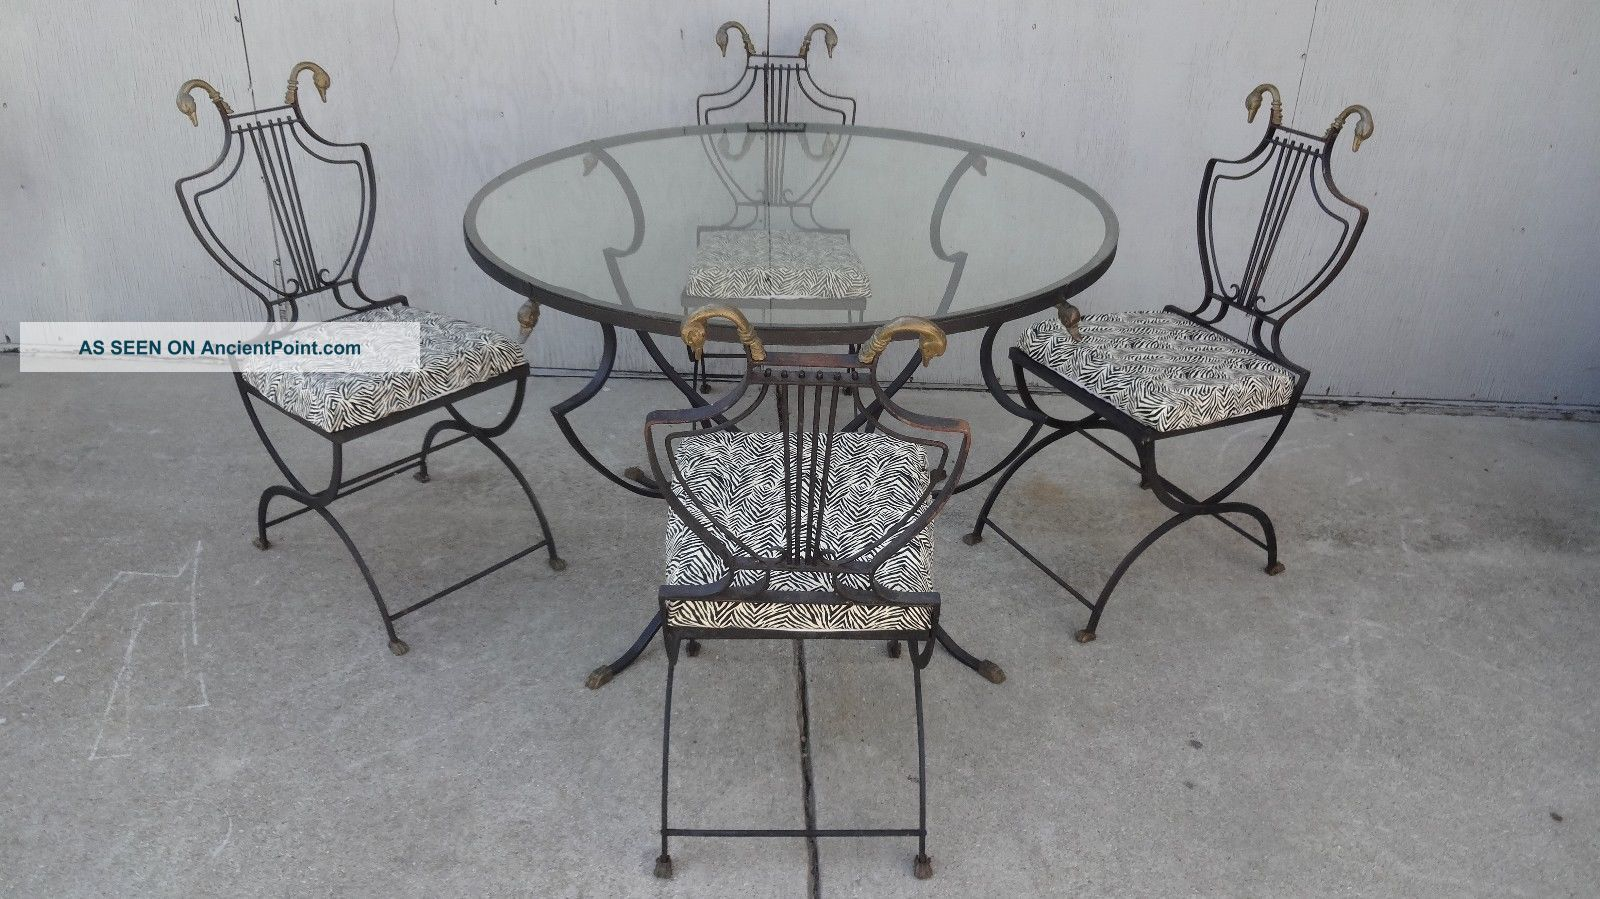 Samuel Copelon Iron Swan Dining Table Chair Neoclassical Lyre Patio Regency Vtg 1900-1950 photo